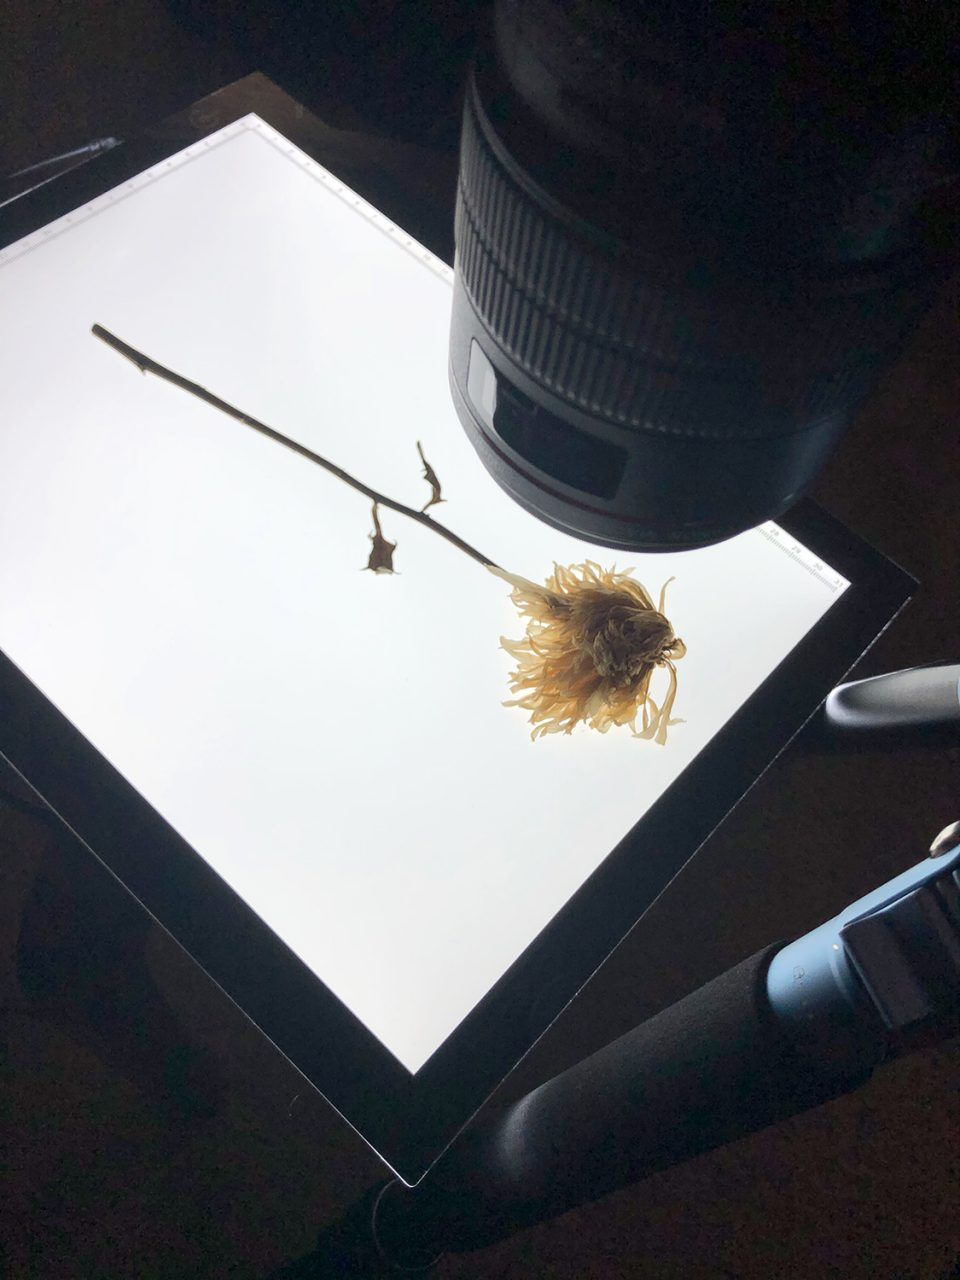 I positioned the flower on a short table, lying flat on a light box, with my camera lens mounted on a tripod pointed down to the flower.